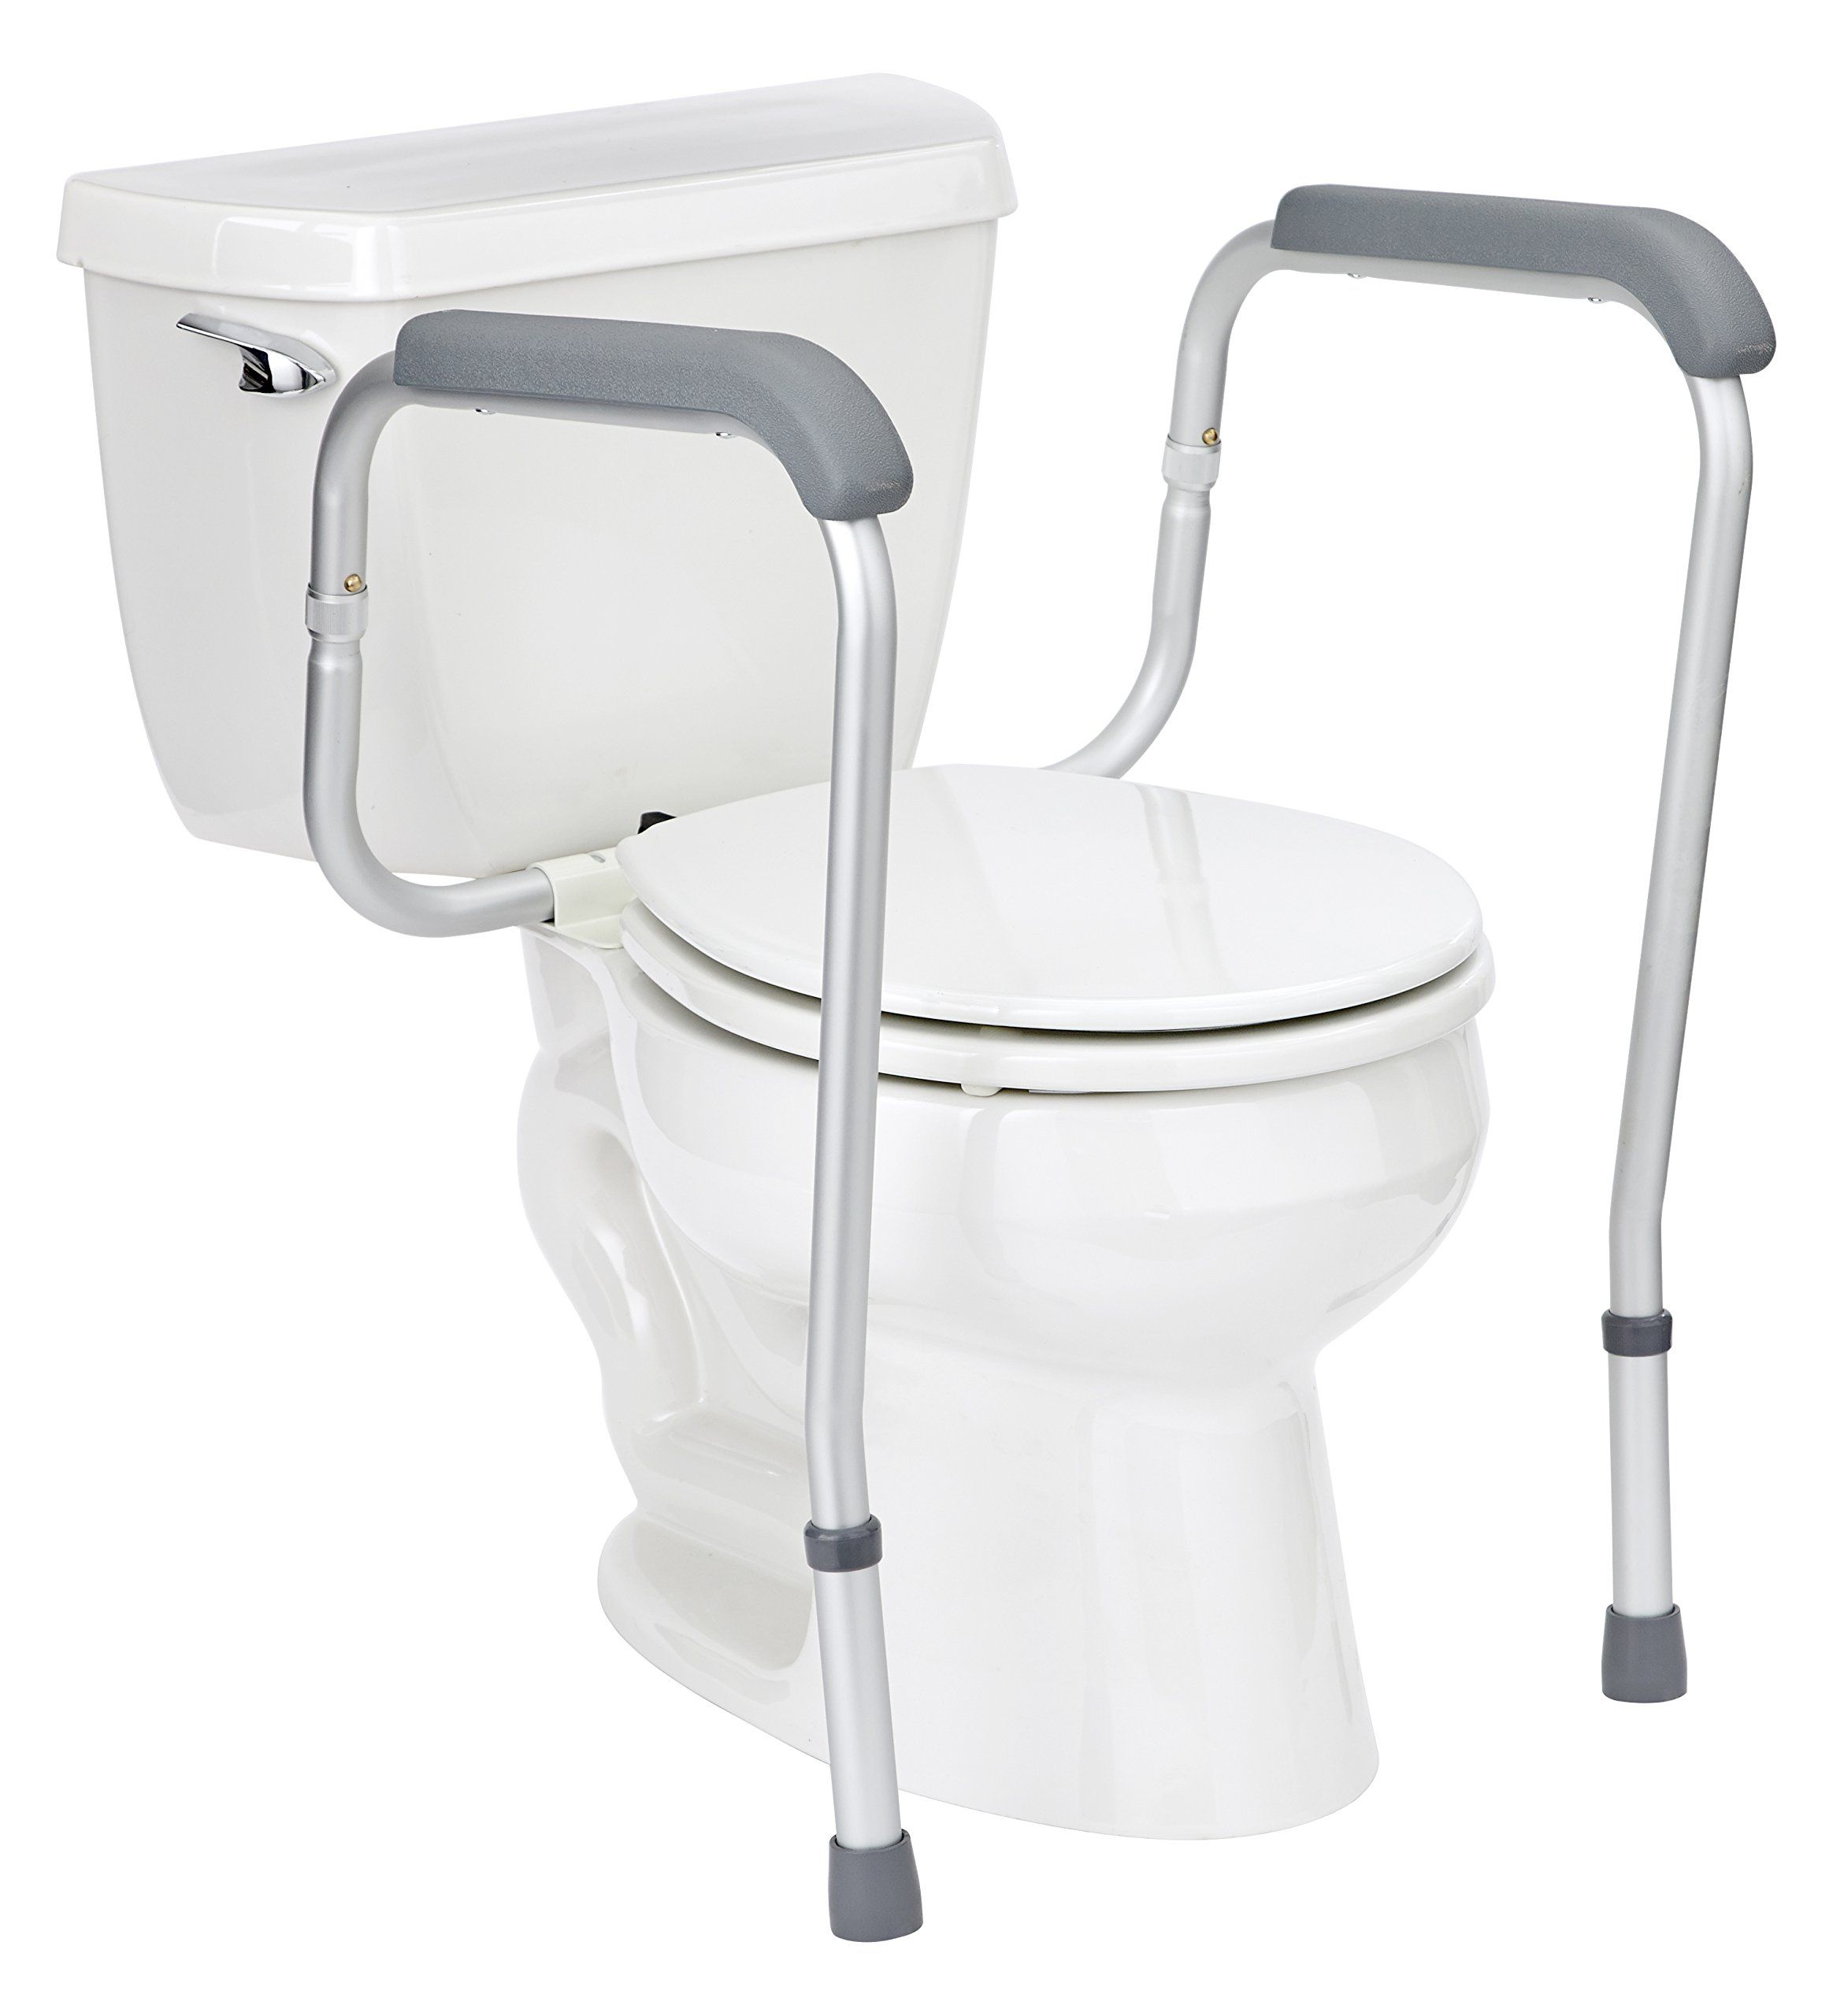 Medline Toilet Safety Rails Health & Personal